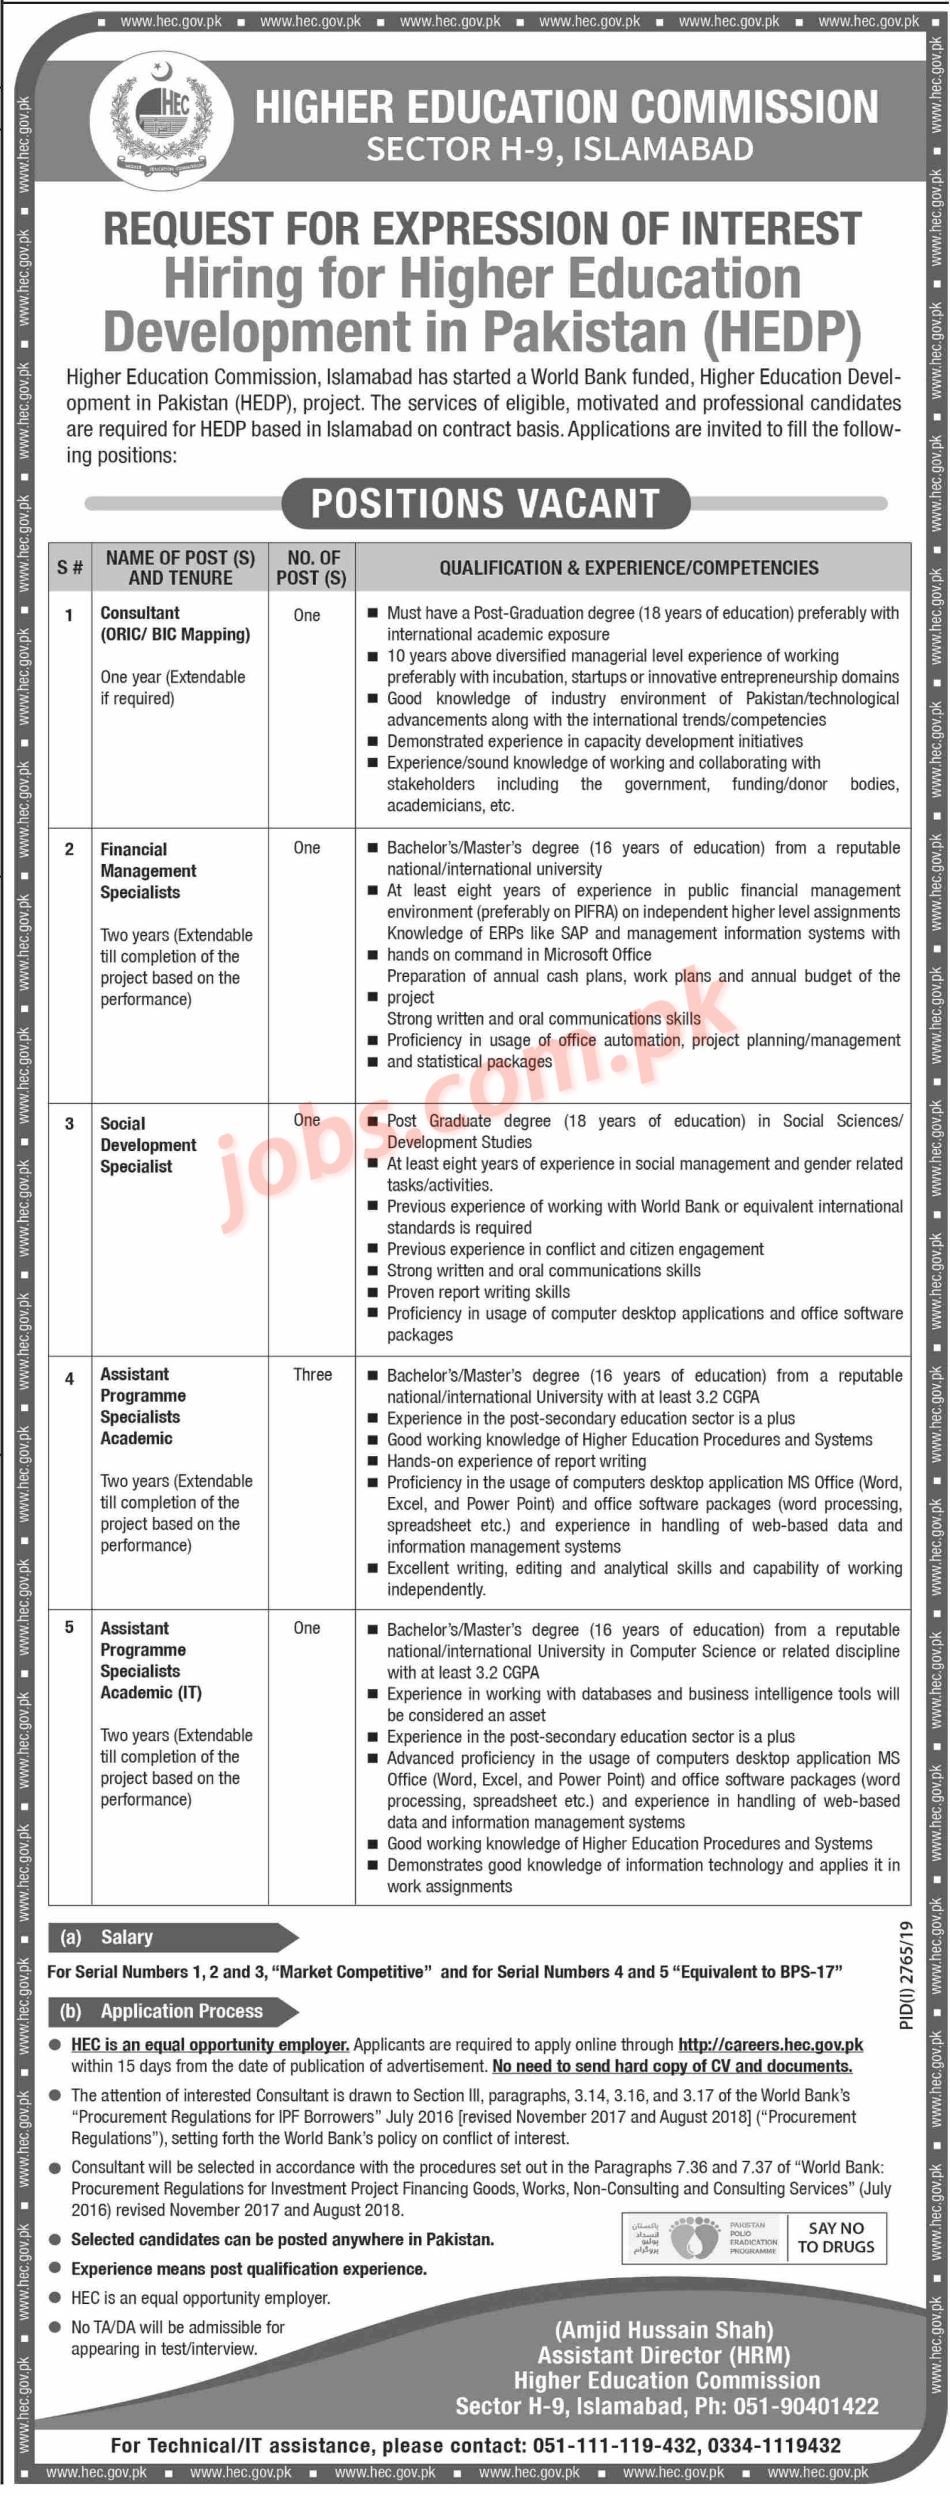 Higher,Education,Commission,(HEC),Jobs,2019,for,7+,Assistant,Programme,Specialists,,Social,Development,,Financial,Management,Specialists,and,Other Posted:,24,Nov,2019,12:58,AM,PST Higher,Education,Commission,(HEC),Jobs,2019,for,7+,Assistant,Programme,Specialists,,Social,Development,,Financial,Management,Specialists,and,Other,to,be,filled,immediately.,Required,qualification,from,a,recognized,institution,and,relevant,work,experience,requirement,are,as,following.,Eligible,candidates,are,encouraged,to,apply,to,the,post,in,prescribed,manner.,Incomplete,and,late,submissions/applications,will,not,be,[…] Last,Date,of,Apply,9,December,2019